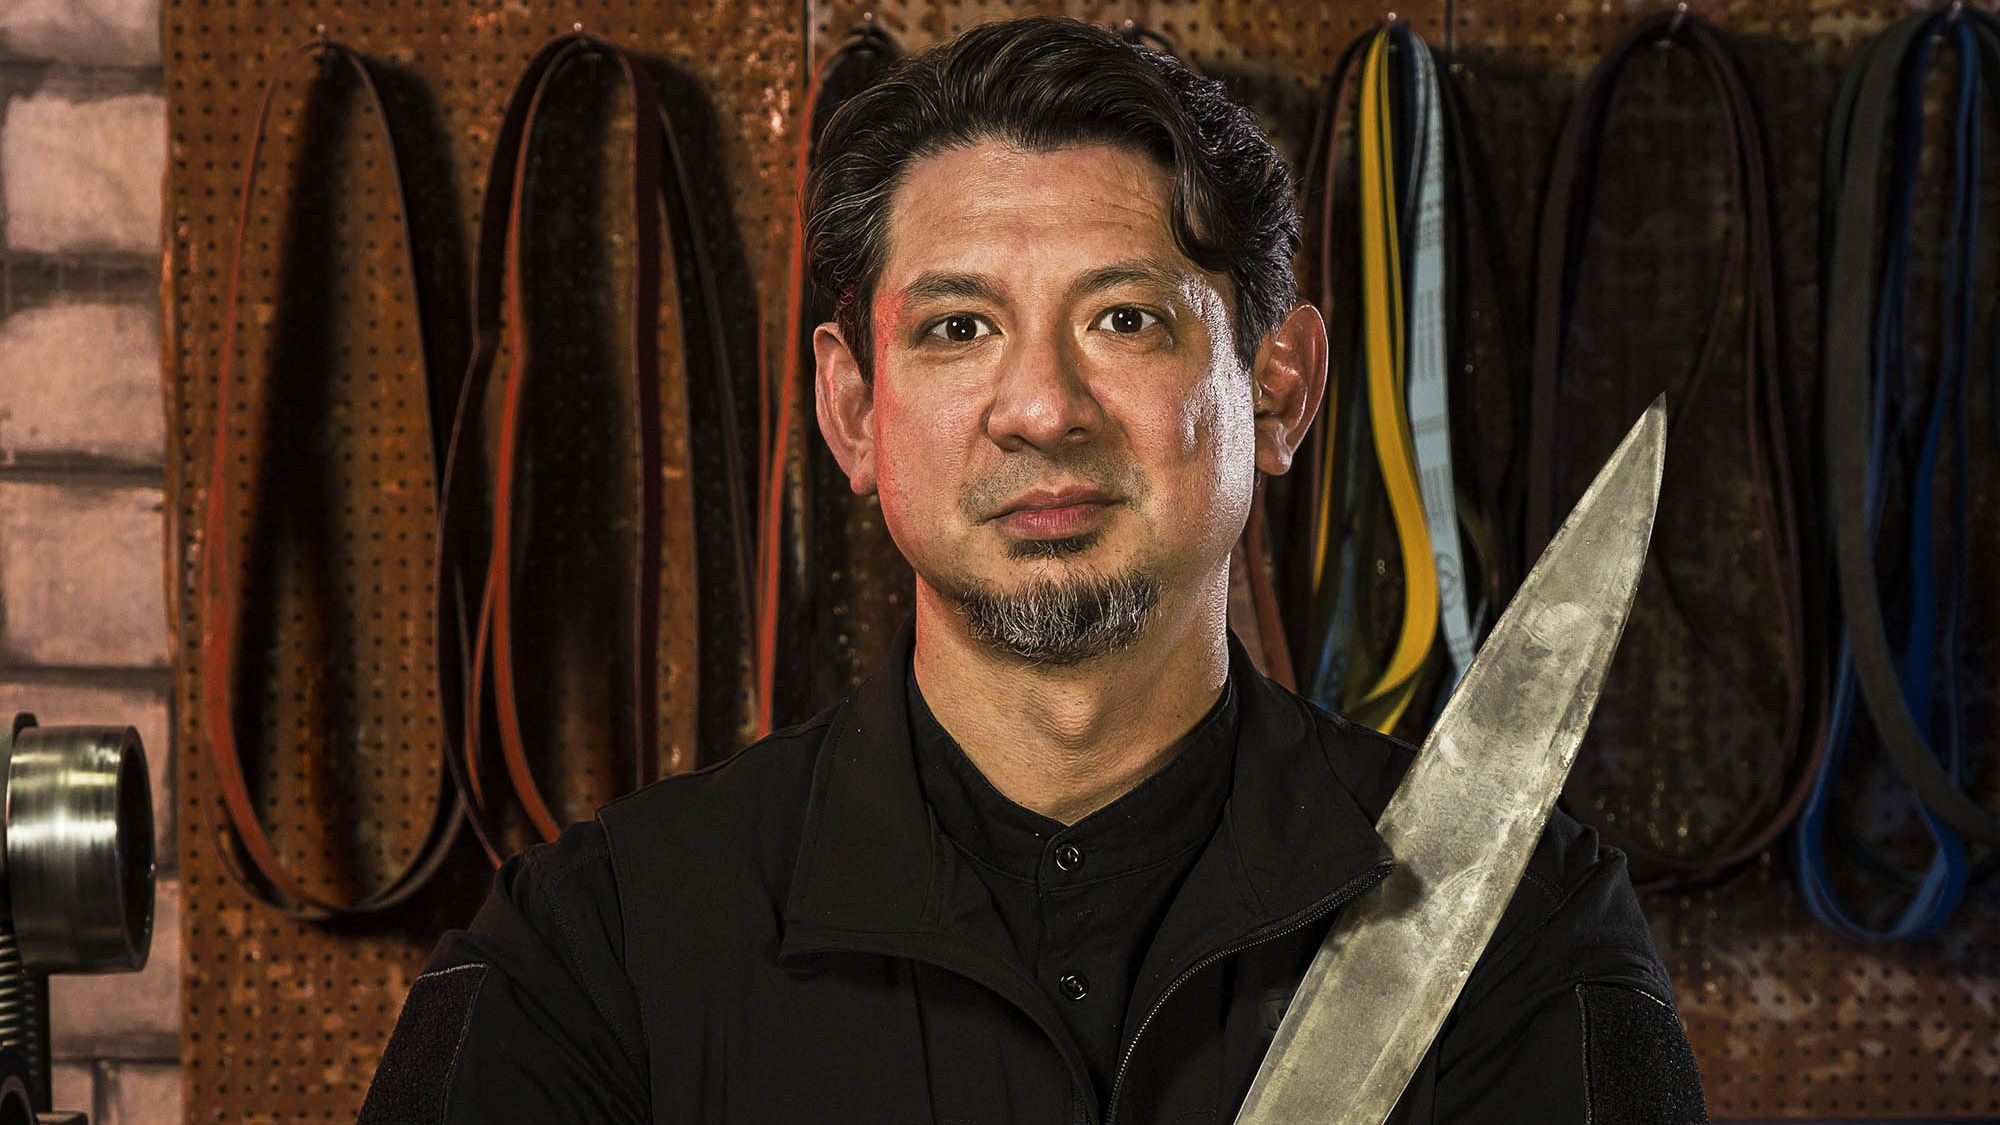 Serie Doug Doug Marcaida Stars In History 39s Series Forged In Fire